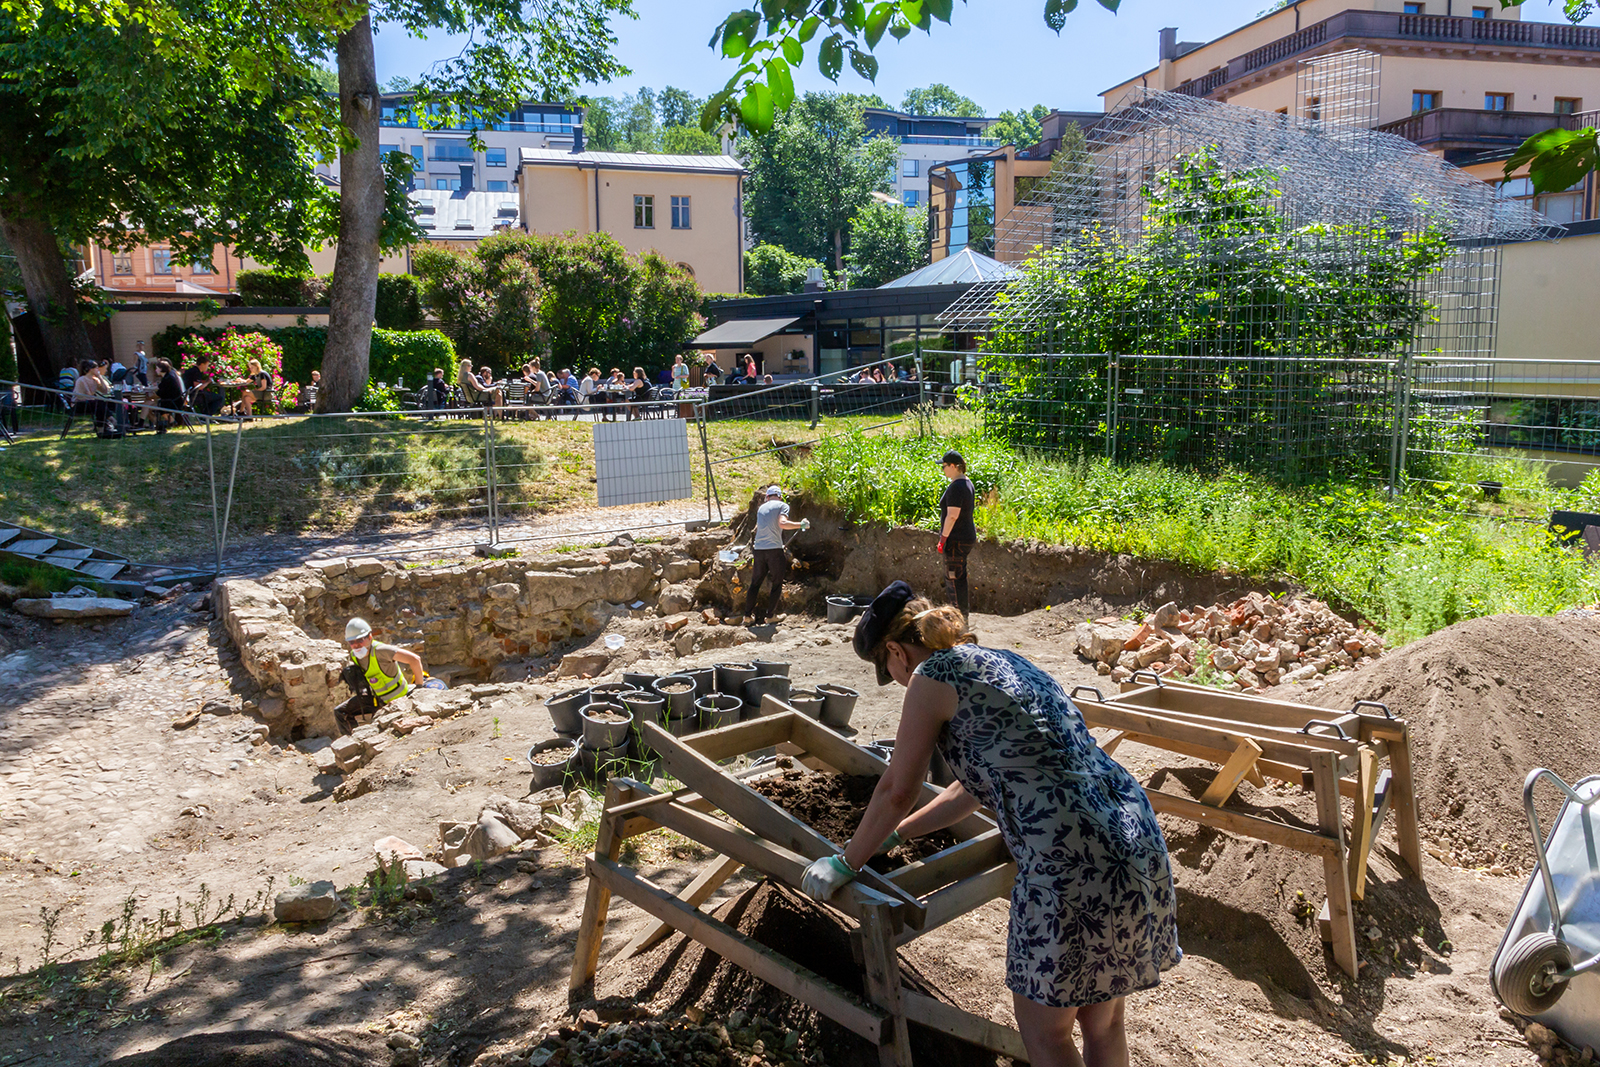 Archaeological excavations under way